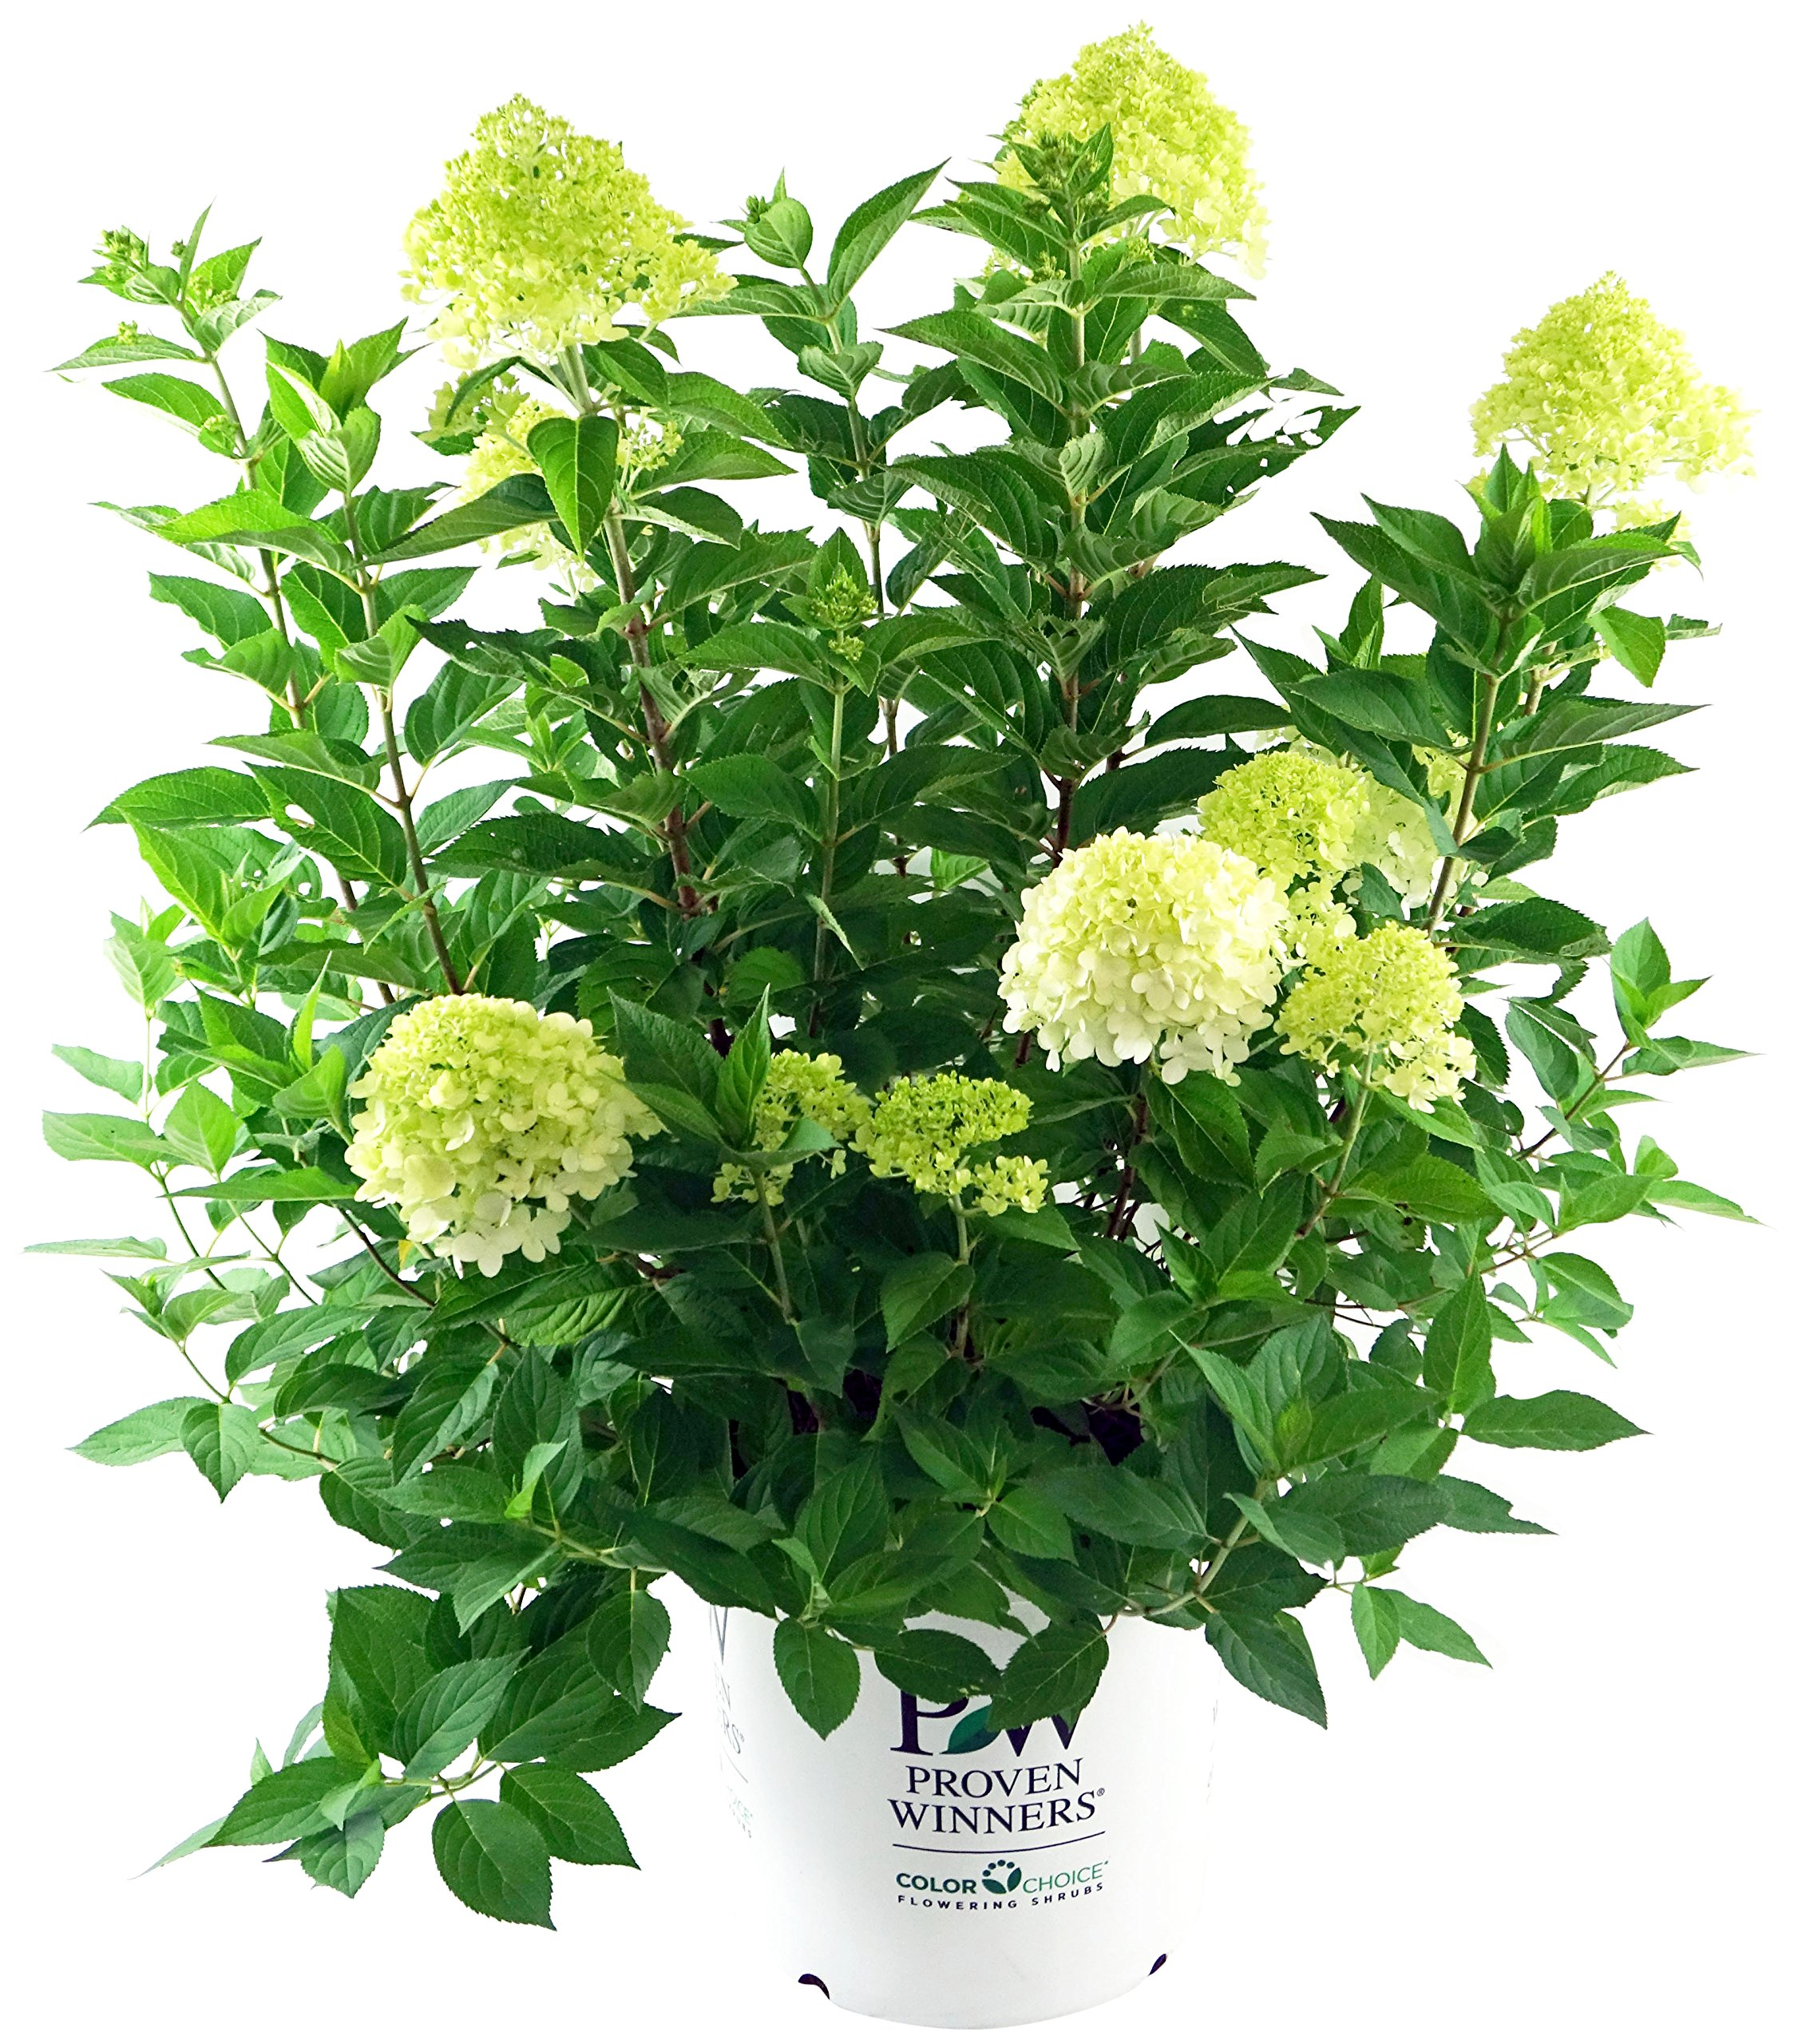 Proven Winners - Hydrangea pan. 'Limelight' (Panicle Hydrangea) Shrub, white/lime to pink flowers, #2 - Size Container by Green Promise Farms